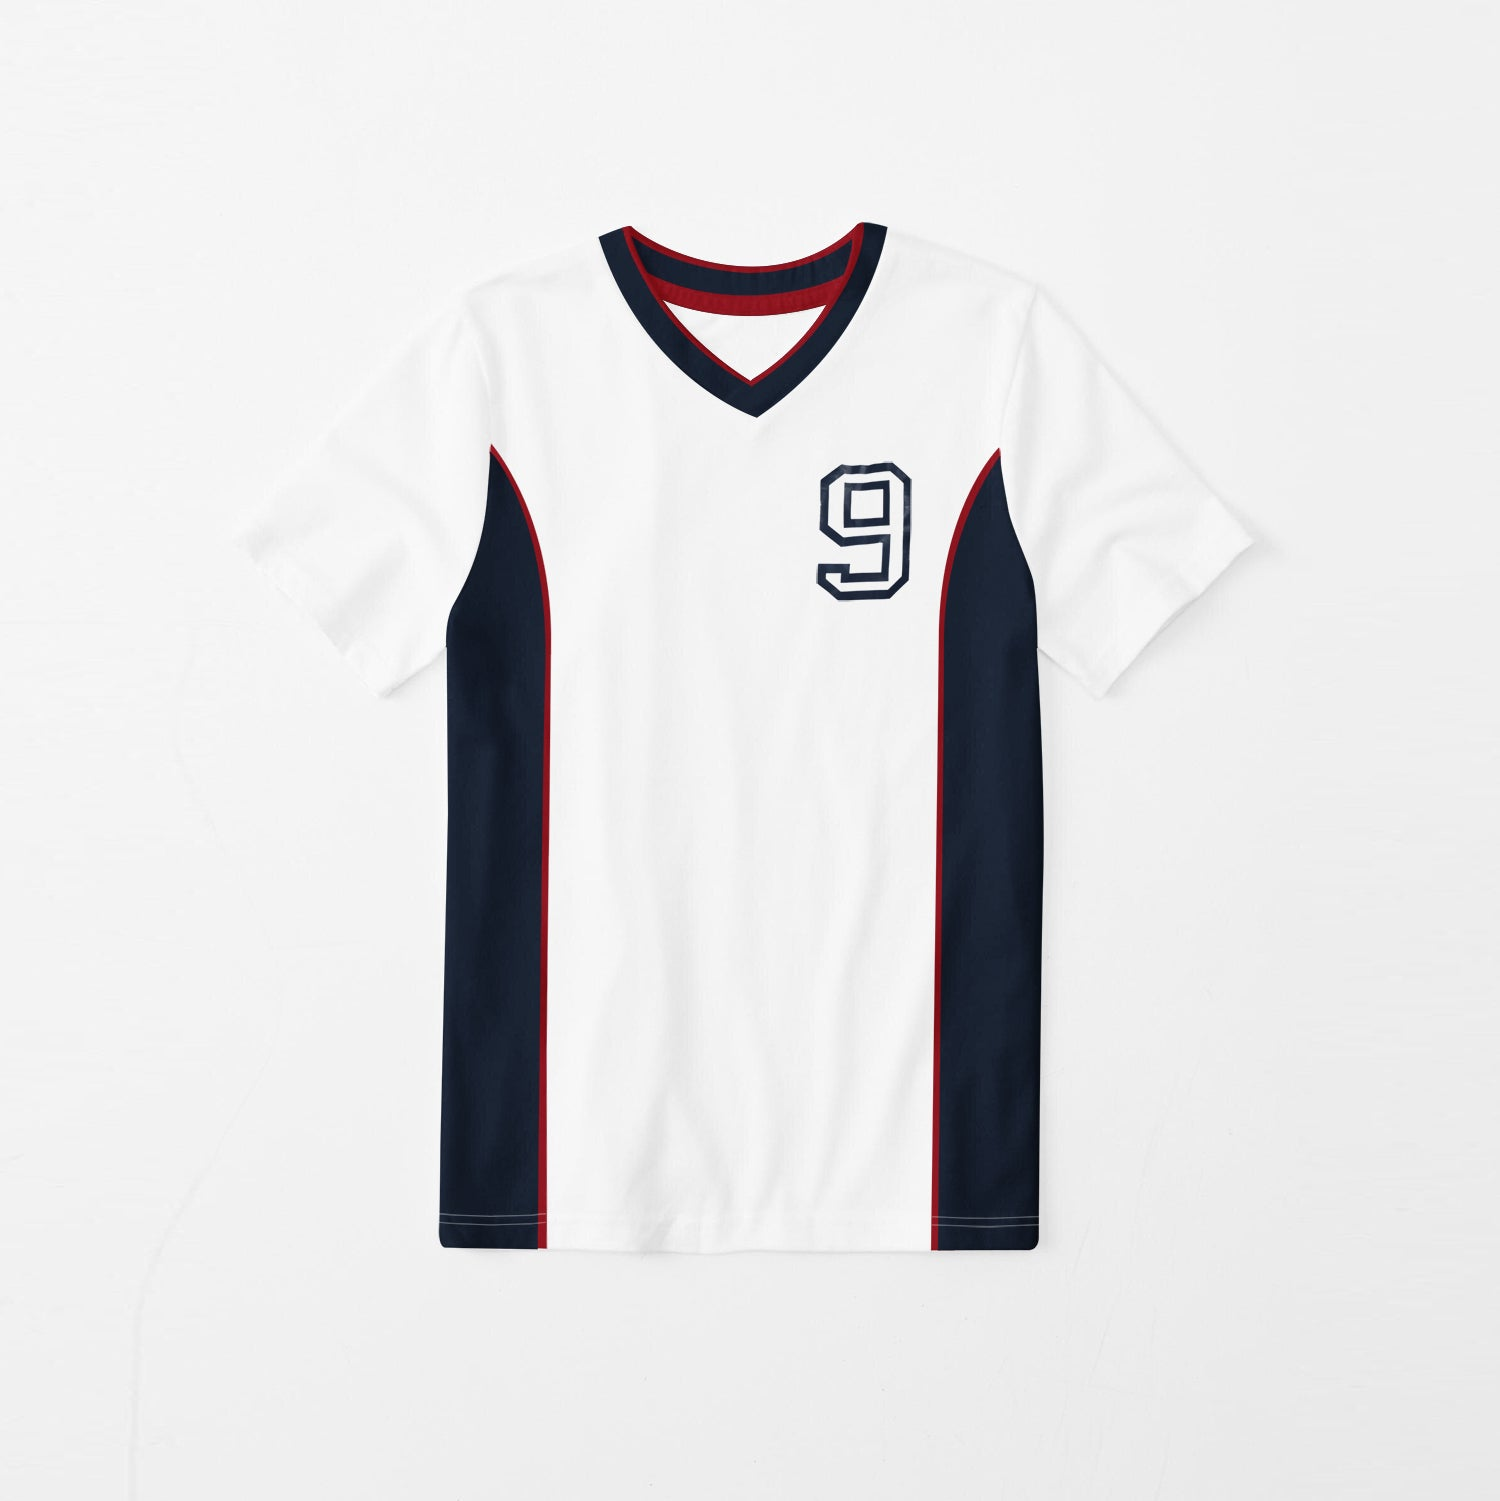 Next Sports Wear V Neck Tee Shirt For Kids-White & Navy-BE9100